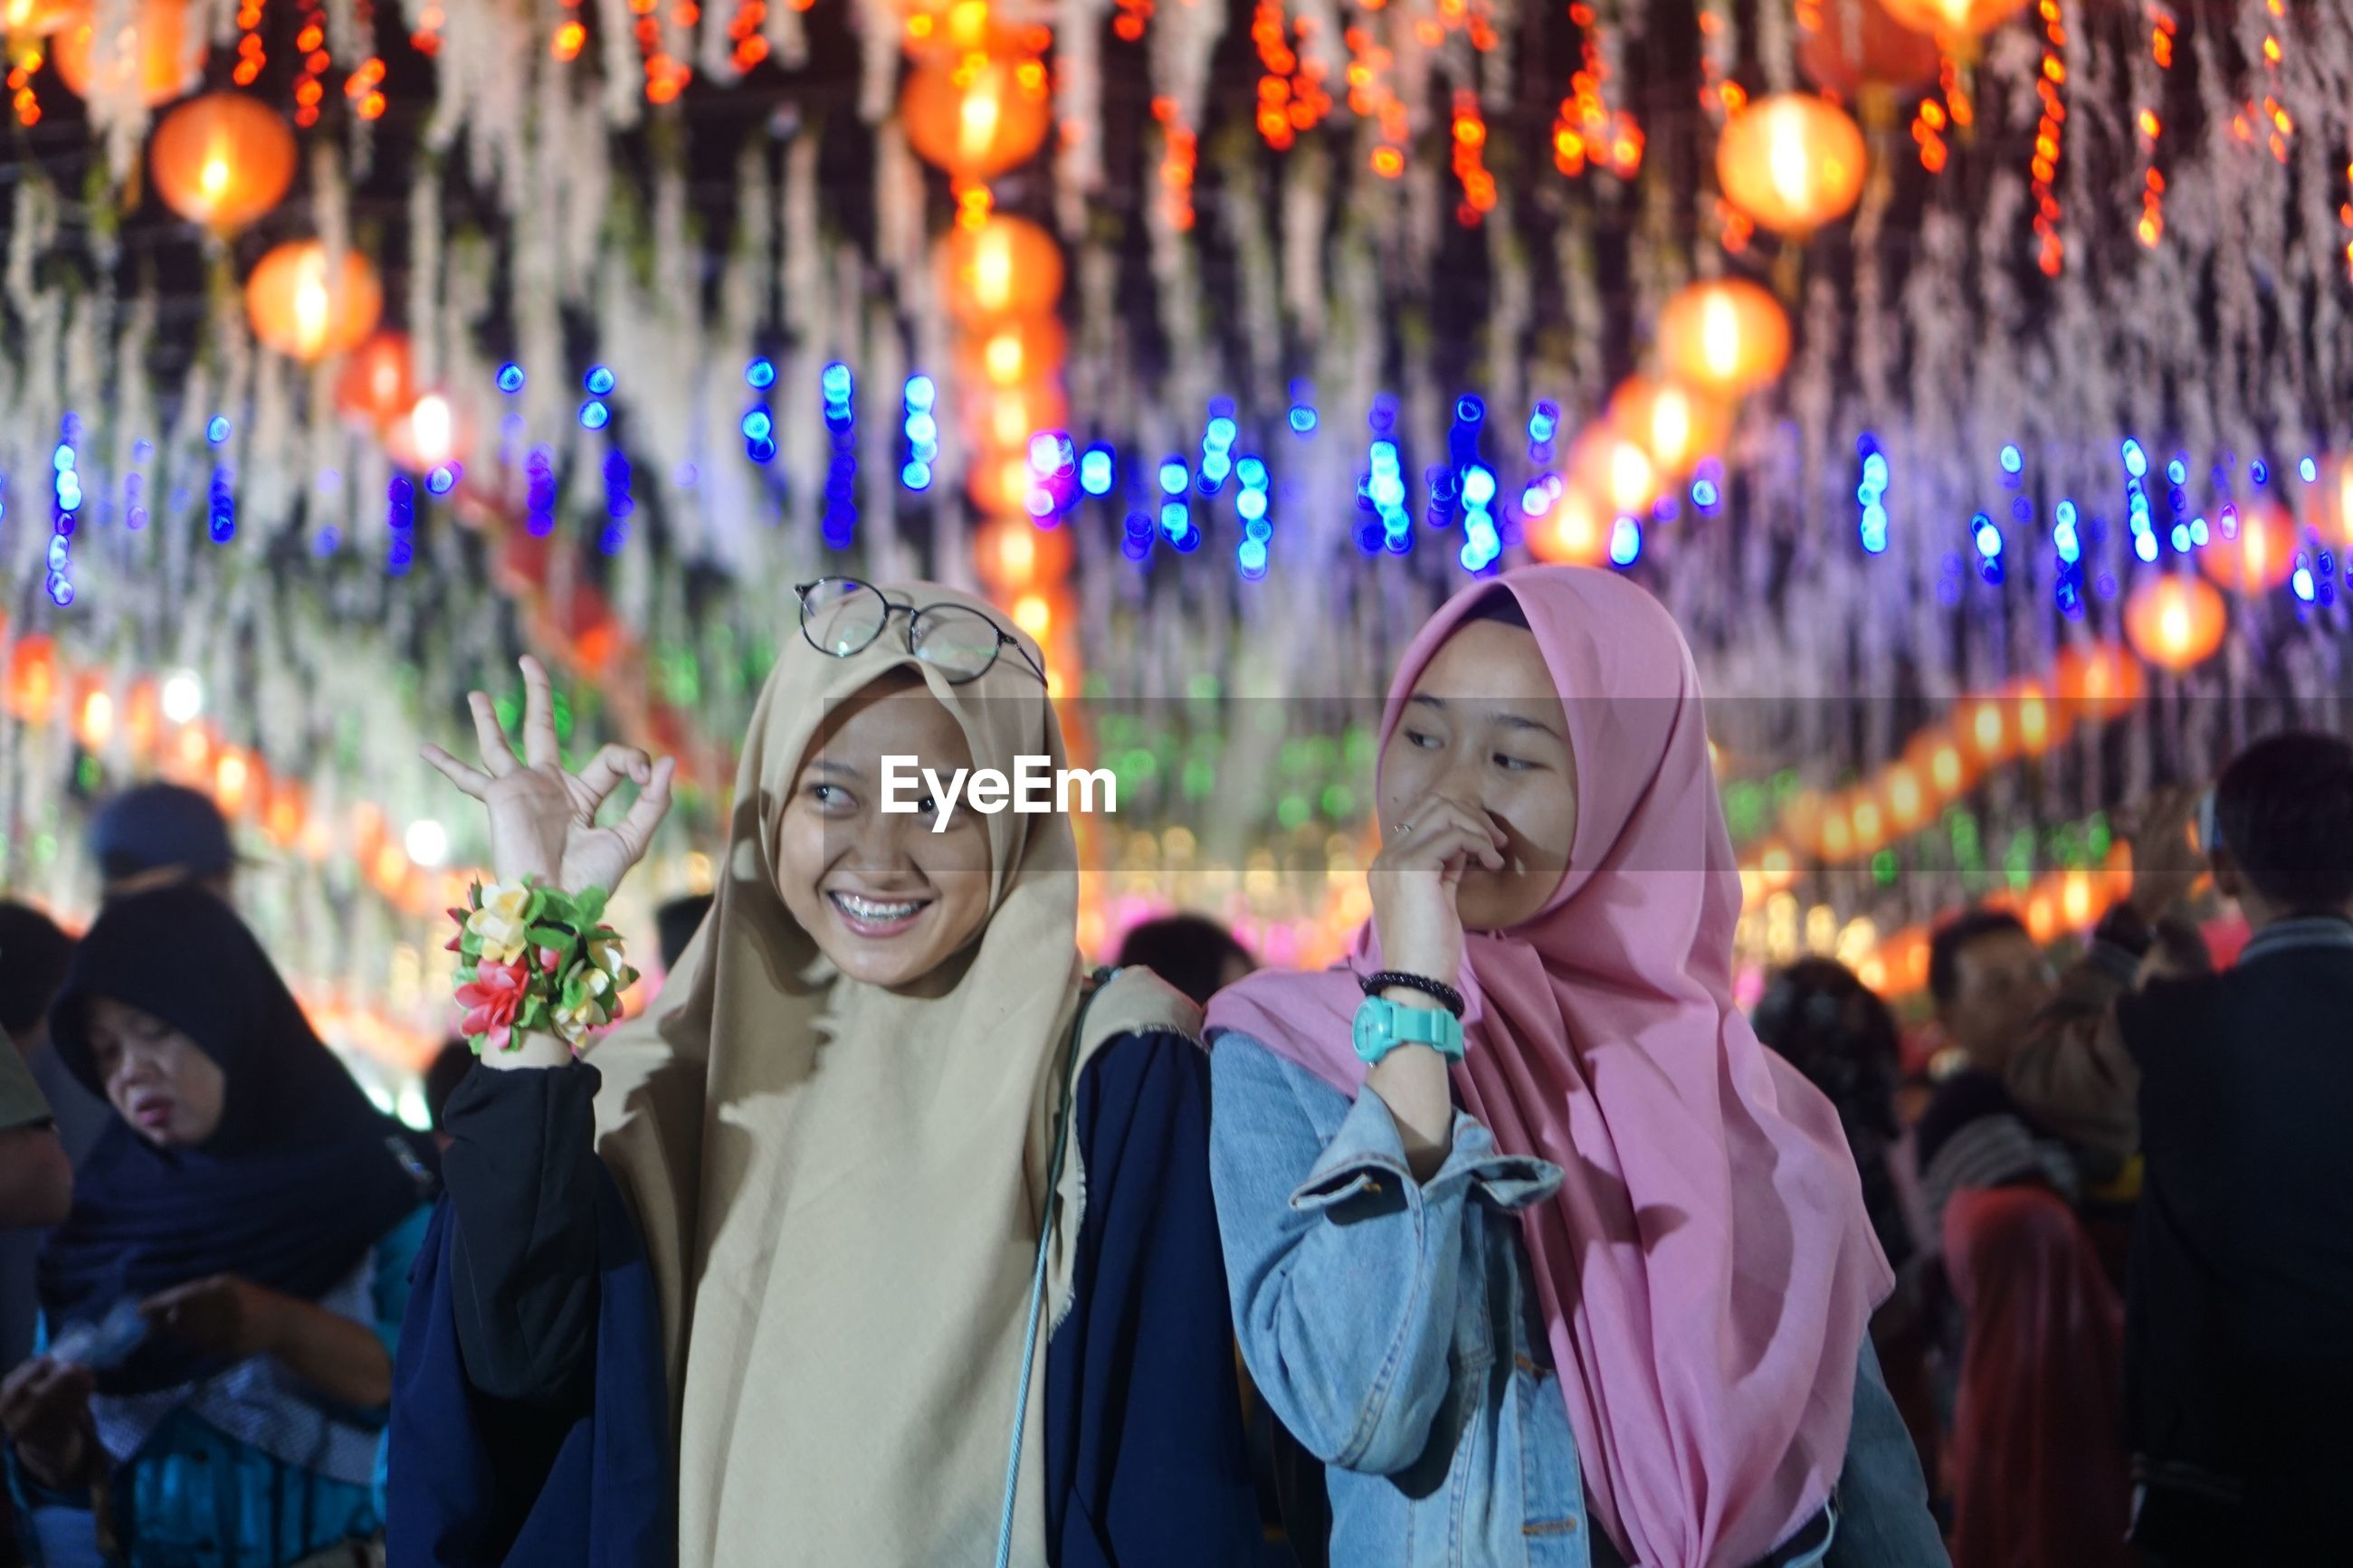 Smiling friends wearing hijab standing against illuminated lights at night